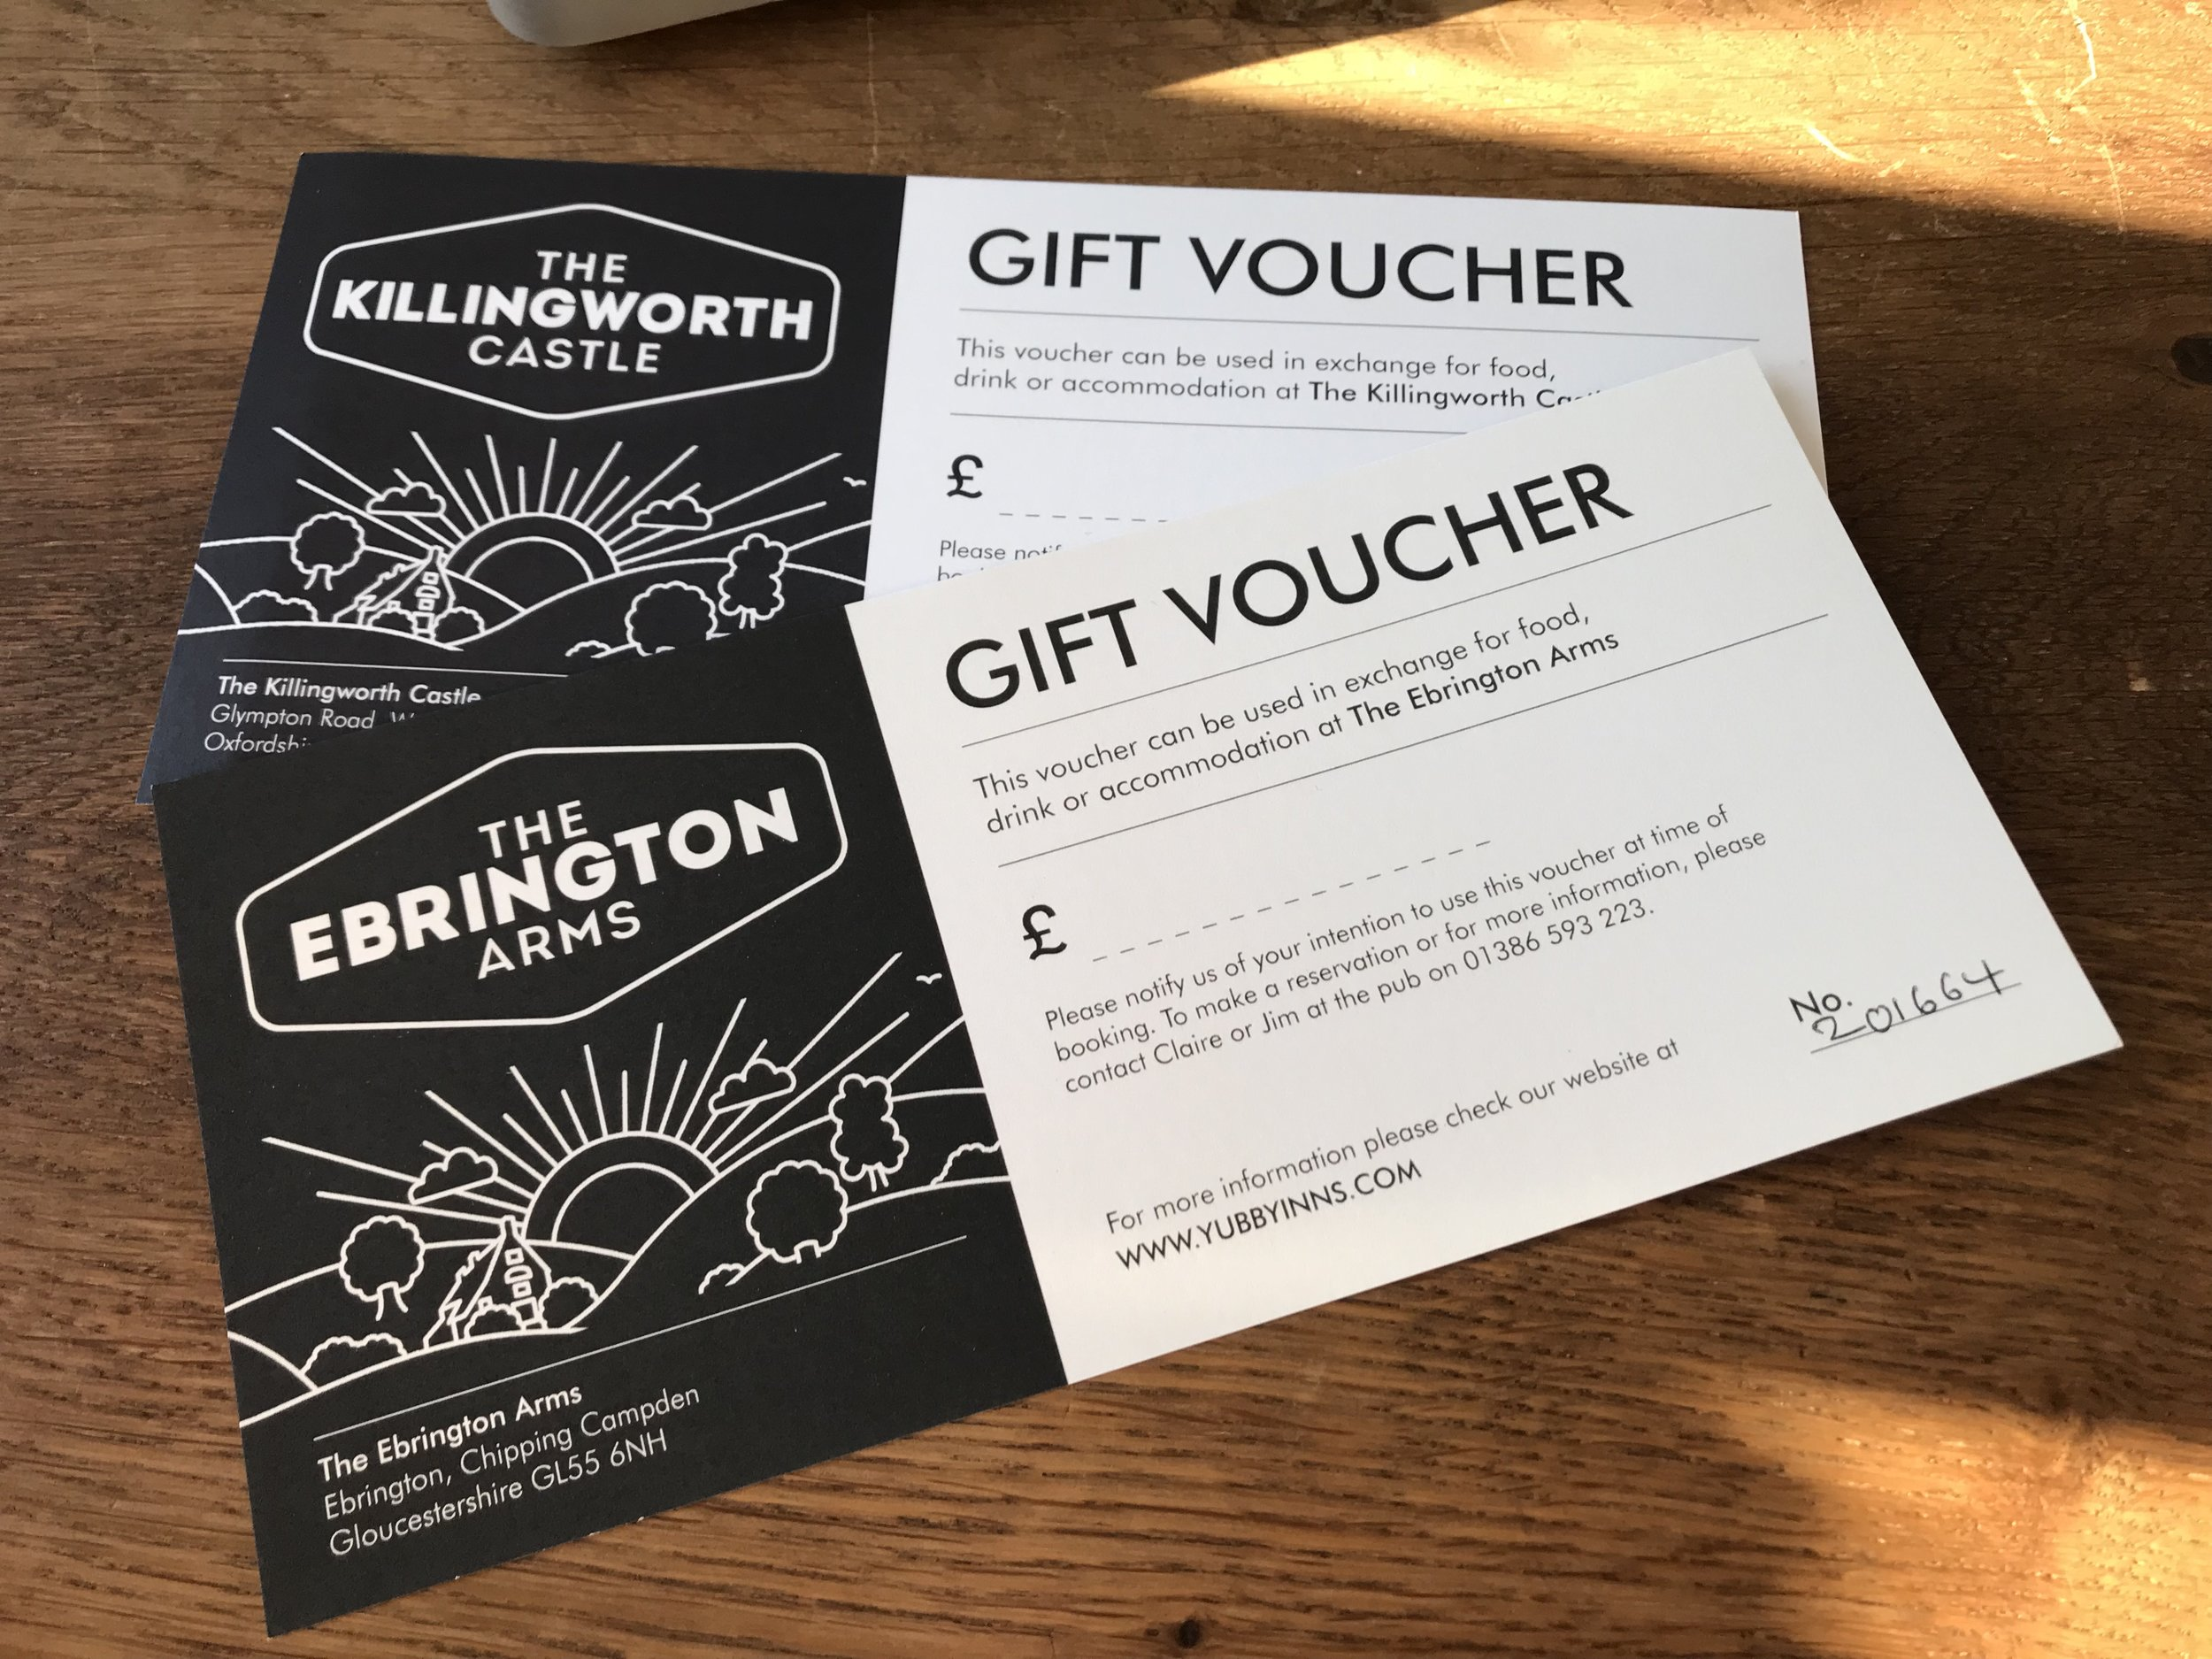 pURCHASE A VOUCHER - Tel: 01386 593 223Email: reservations@yubbyinns.com